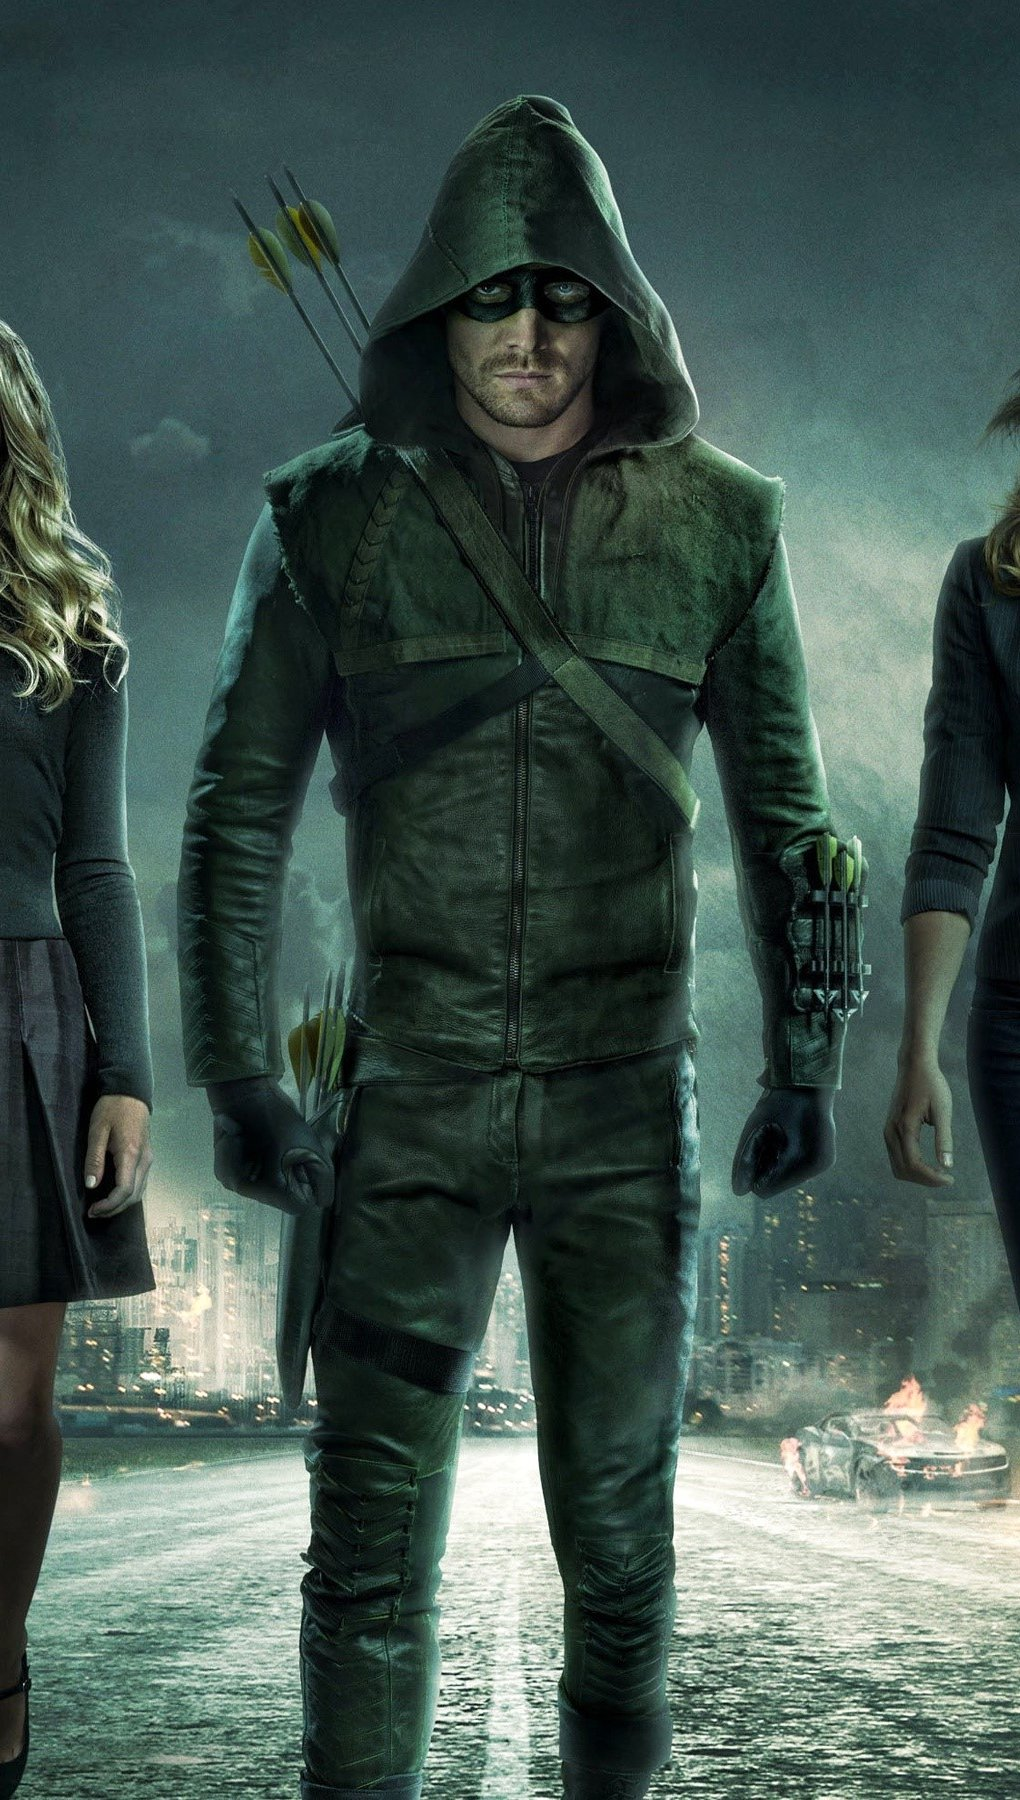 Fondos de pantalla Arrow temporada 3 Vertical